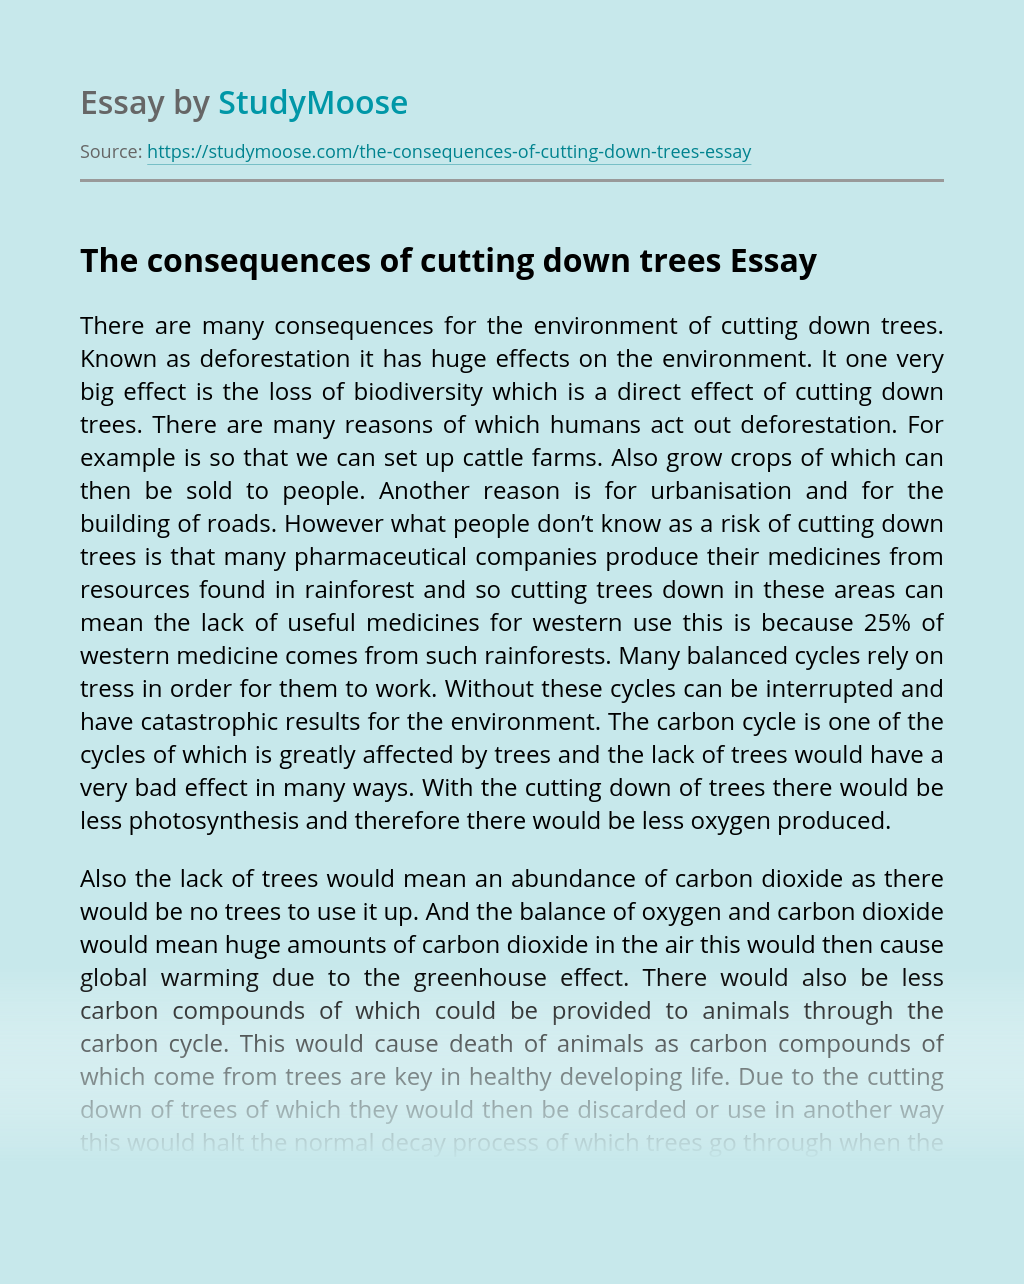 The consequences of cutting down trees